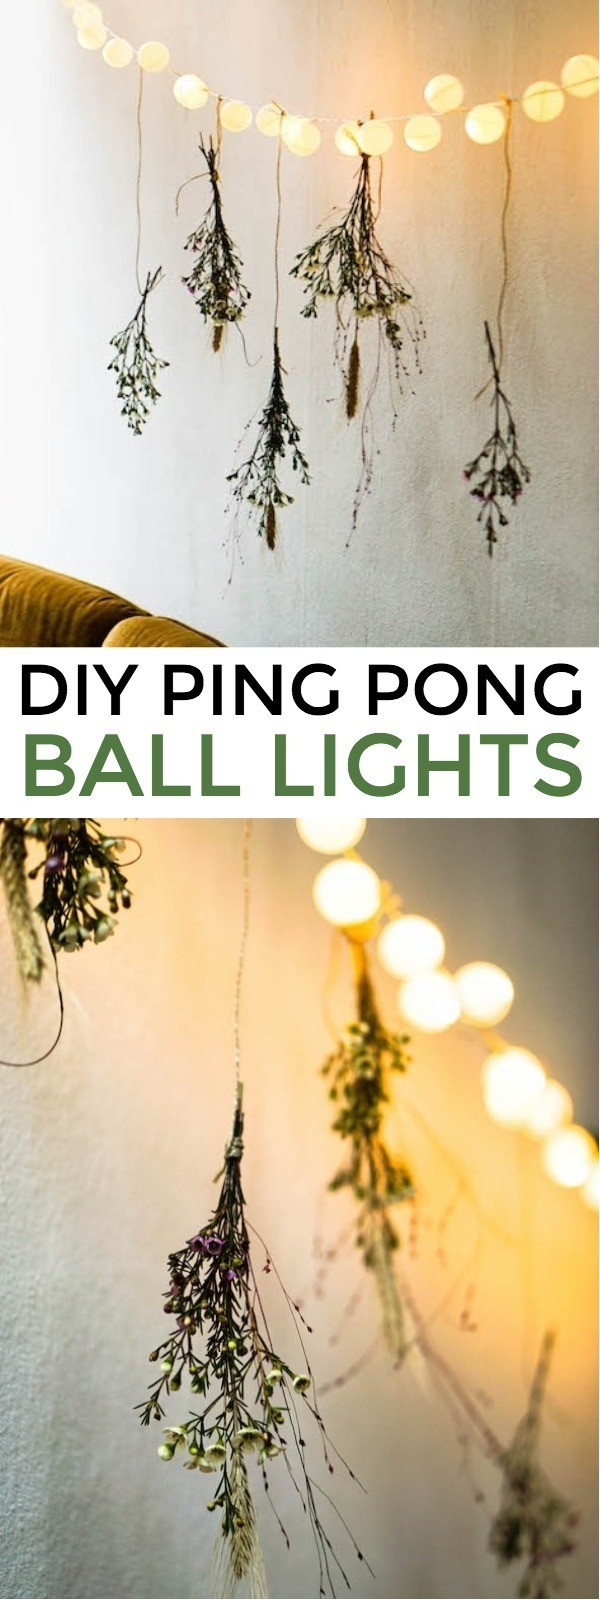 Easy DIY Ping Pong Ball Lights - Add A Little Fun To Your Outdoor Space! ping ping ball lights diy | ping pong ball lights wedding | ping pong lights | diy ping pong lights decoration | honeyandlime.co